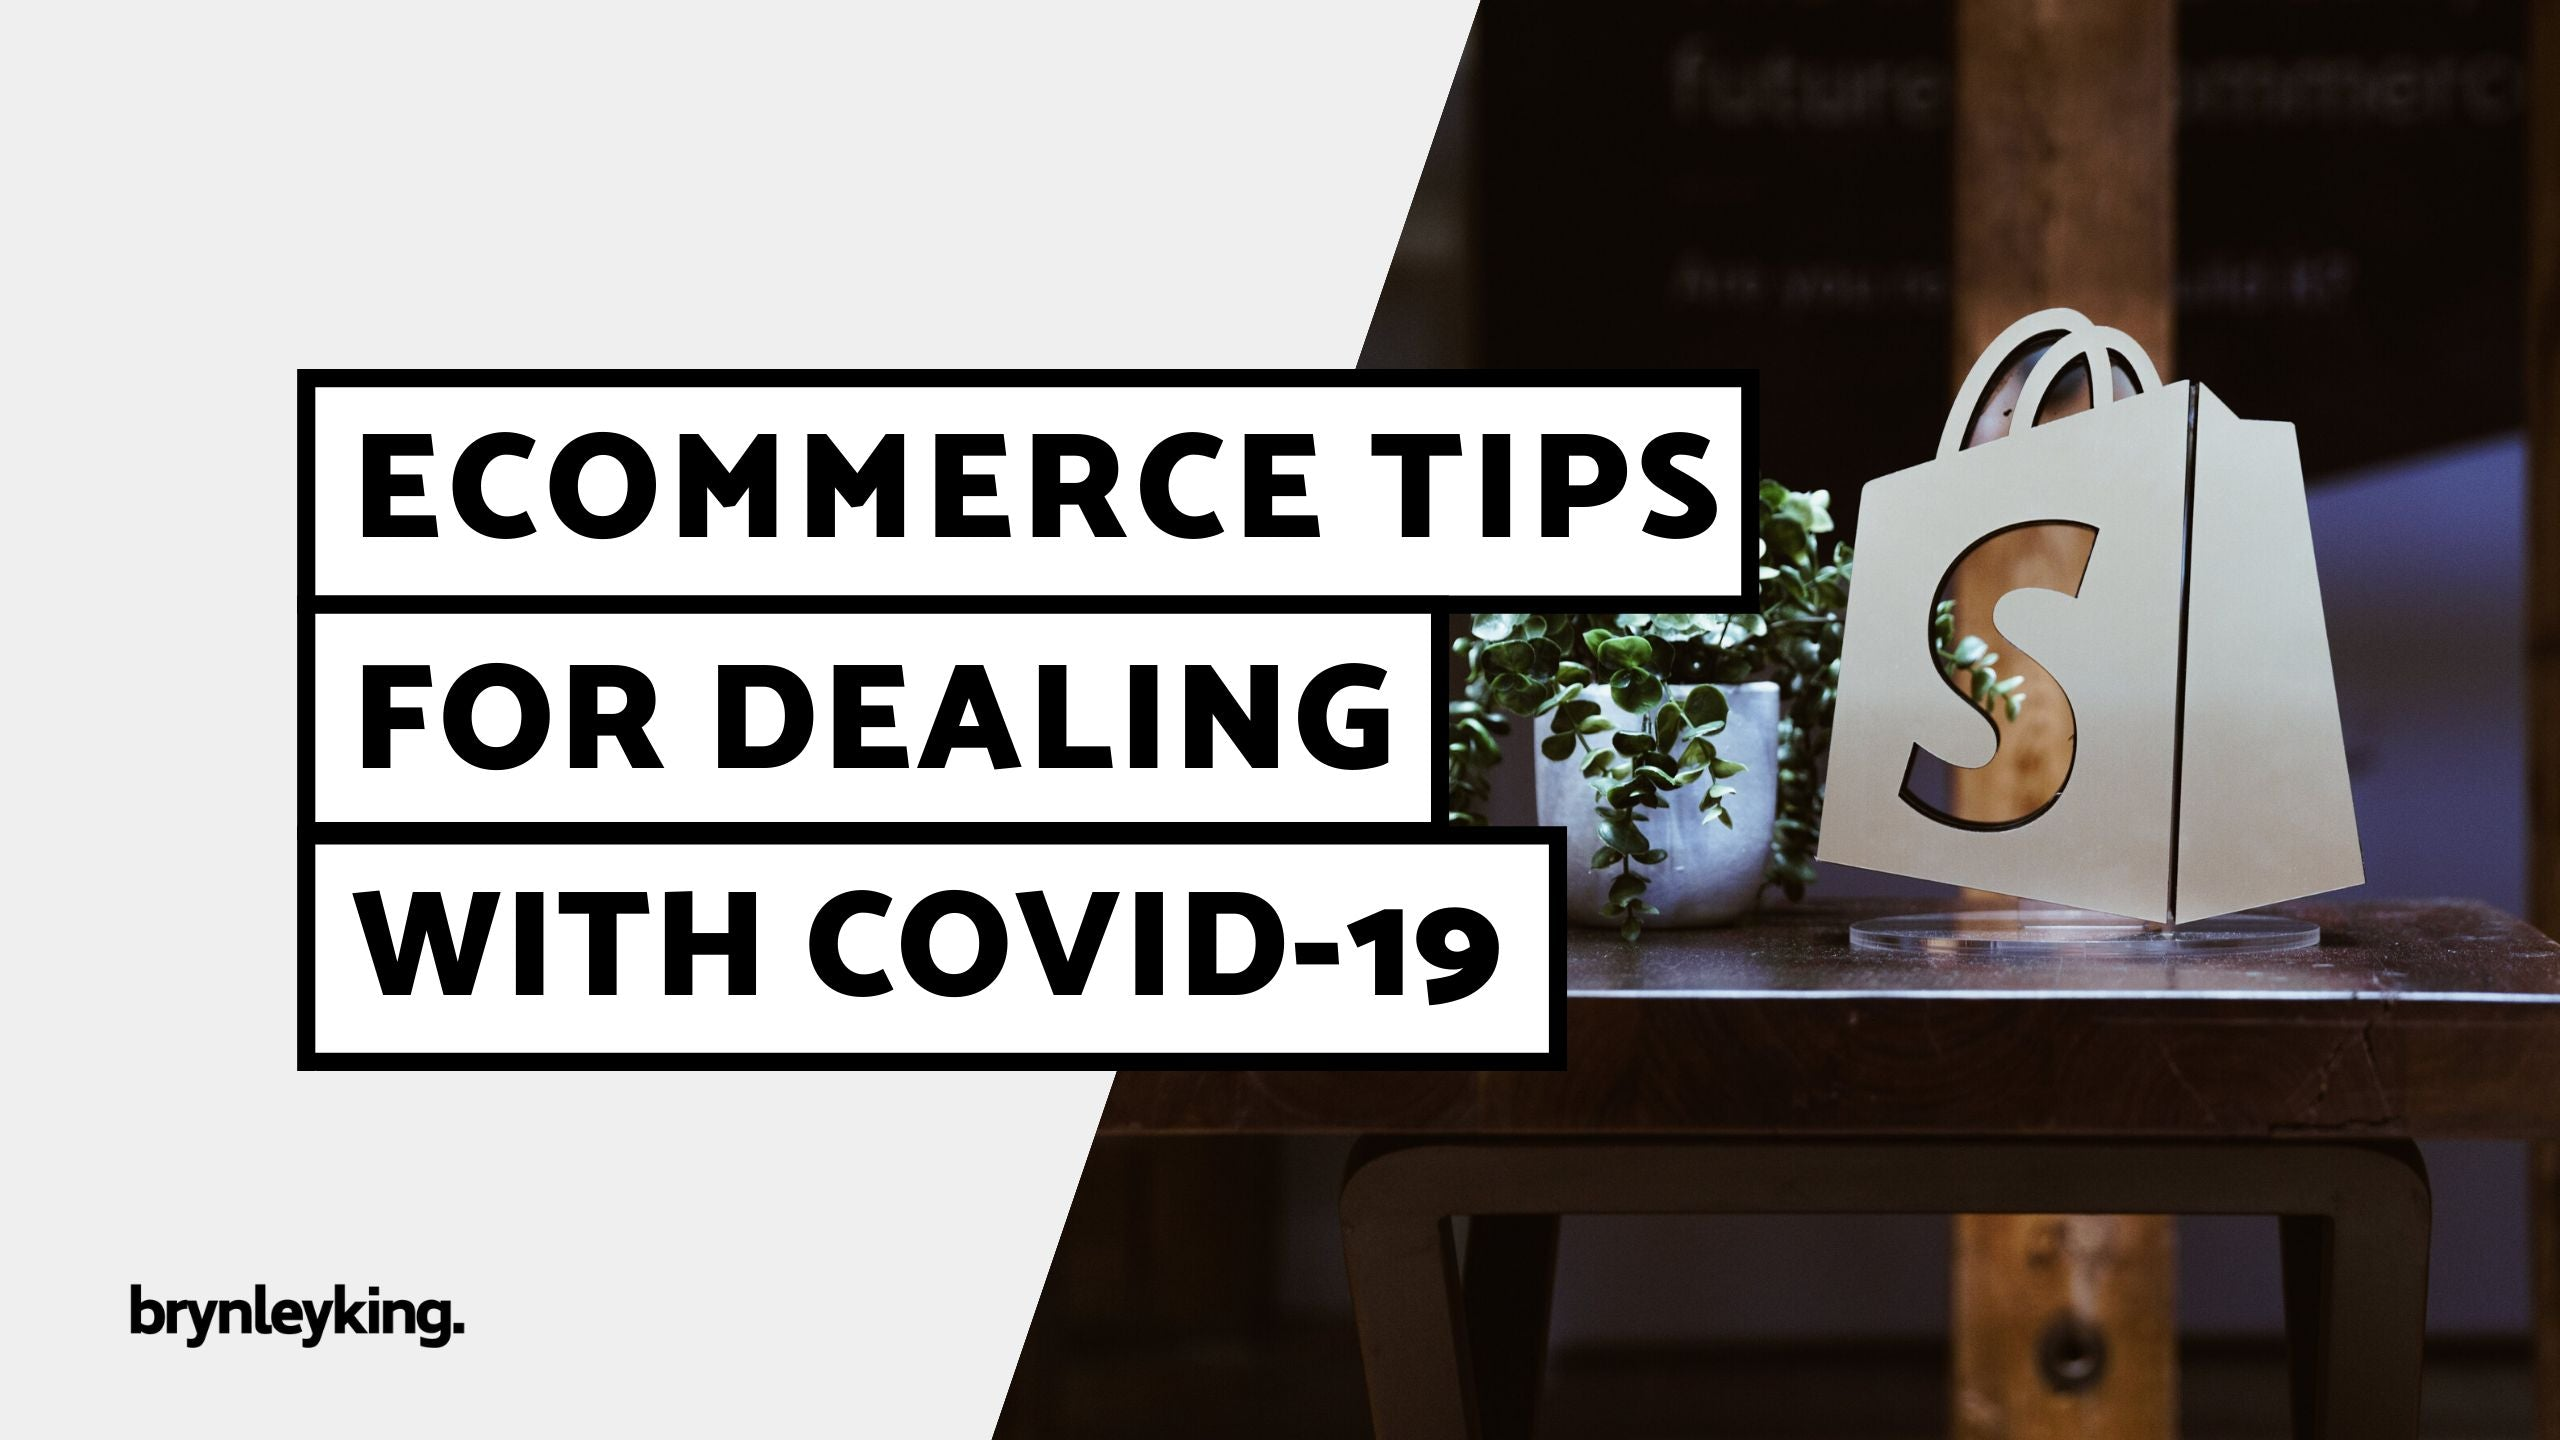 eCommerce Tips for Dealing with COVID-19